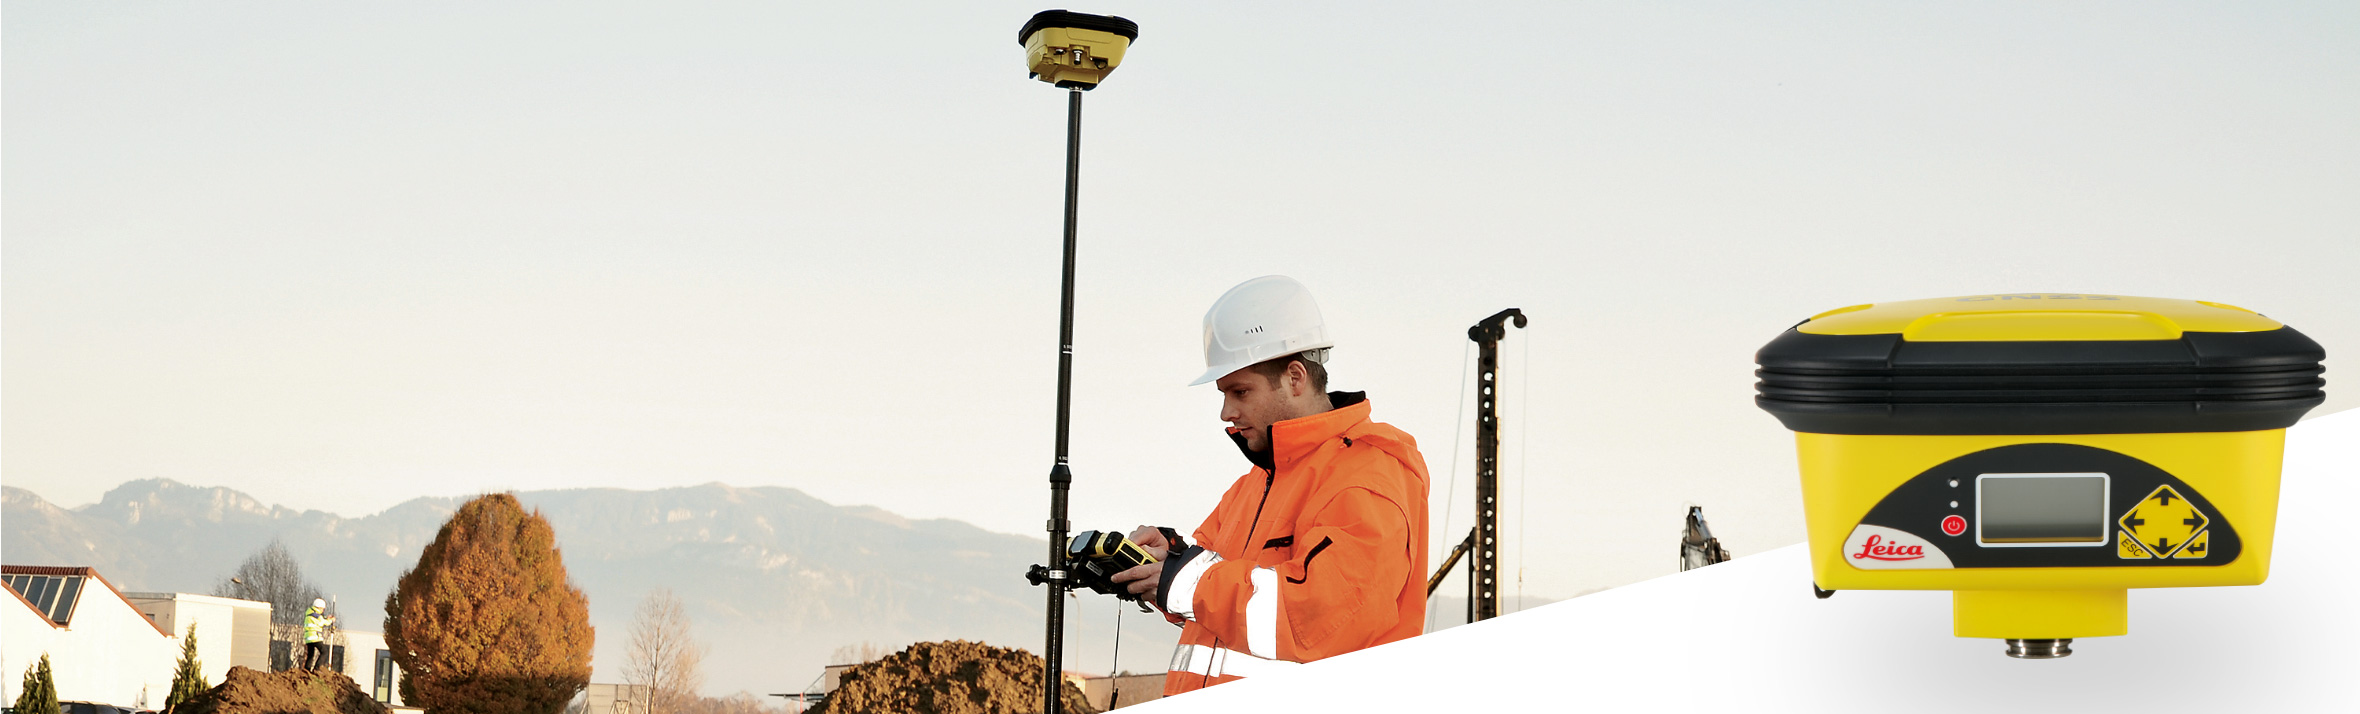 Leica iCON gps 60 Smart Antenne